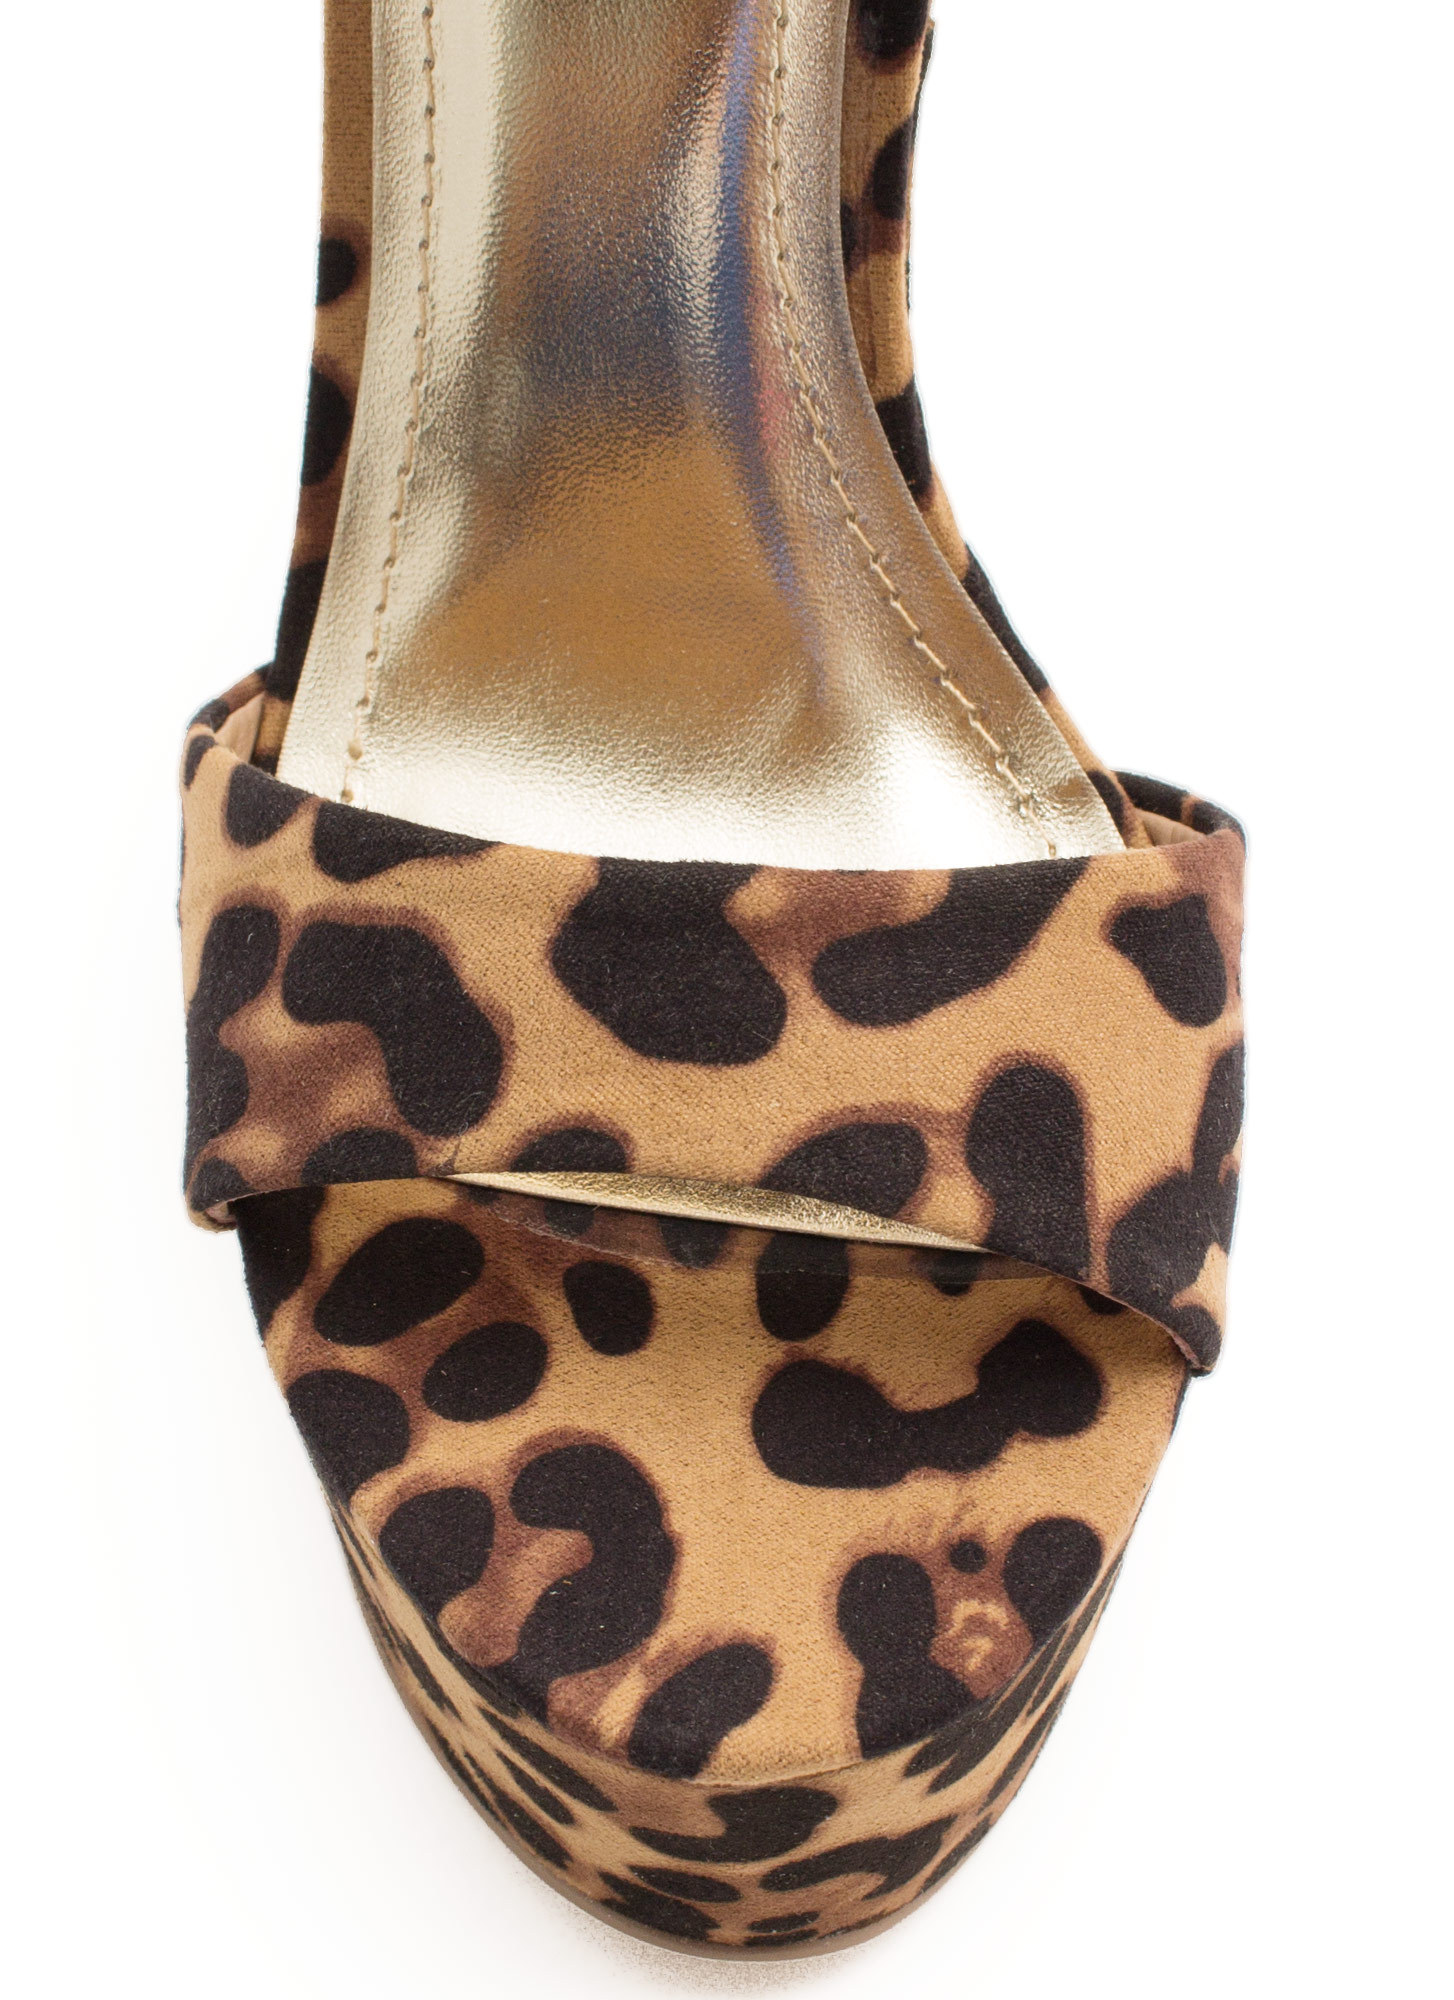 Cuff Luck Big Buckle Platform Heels LEOPARD